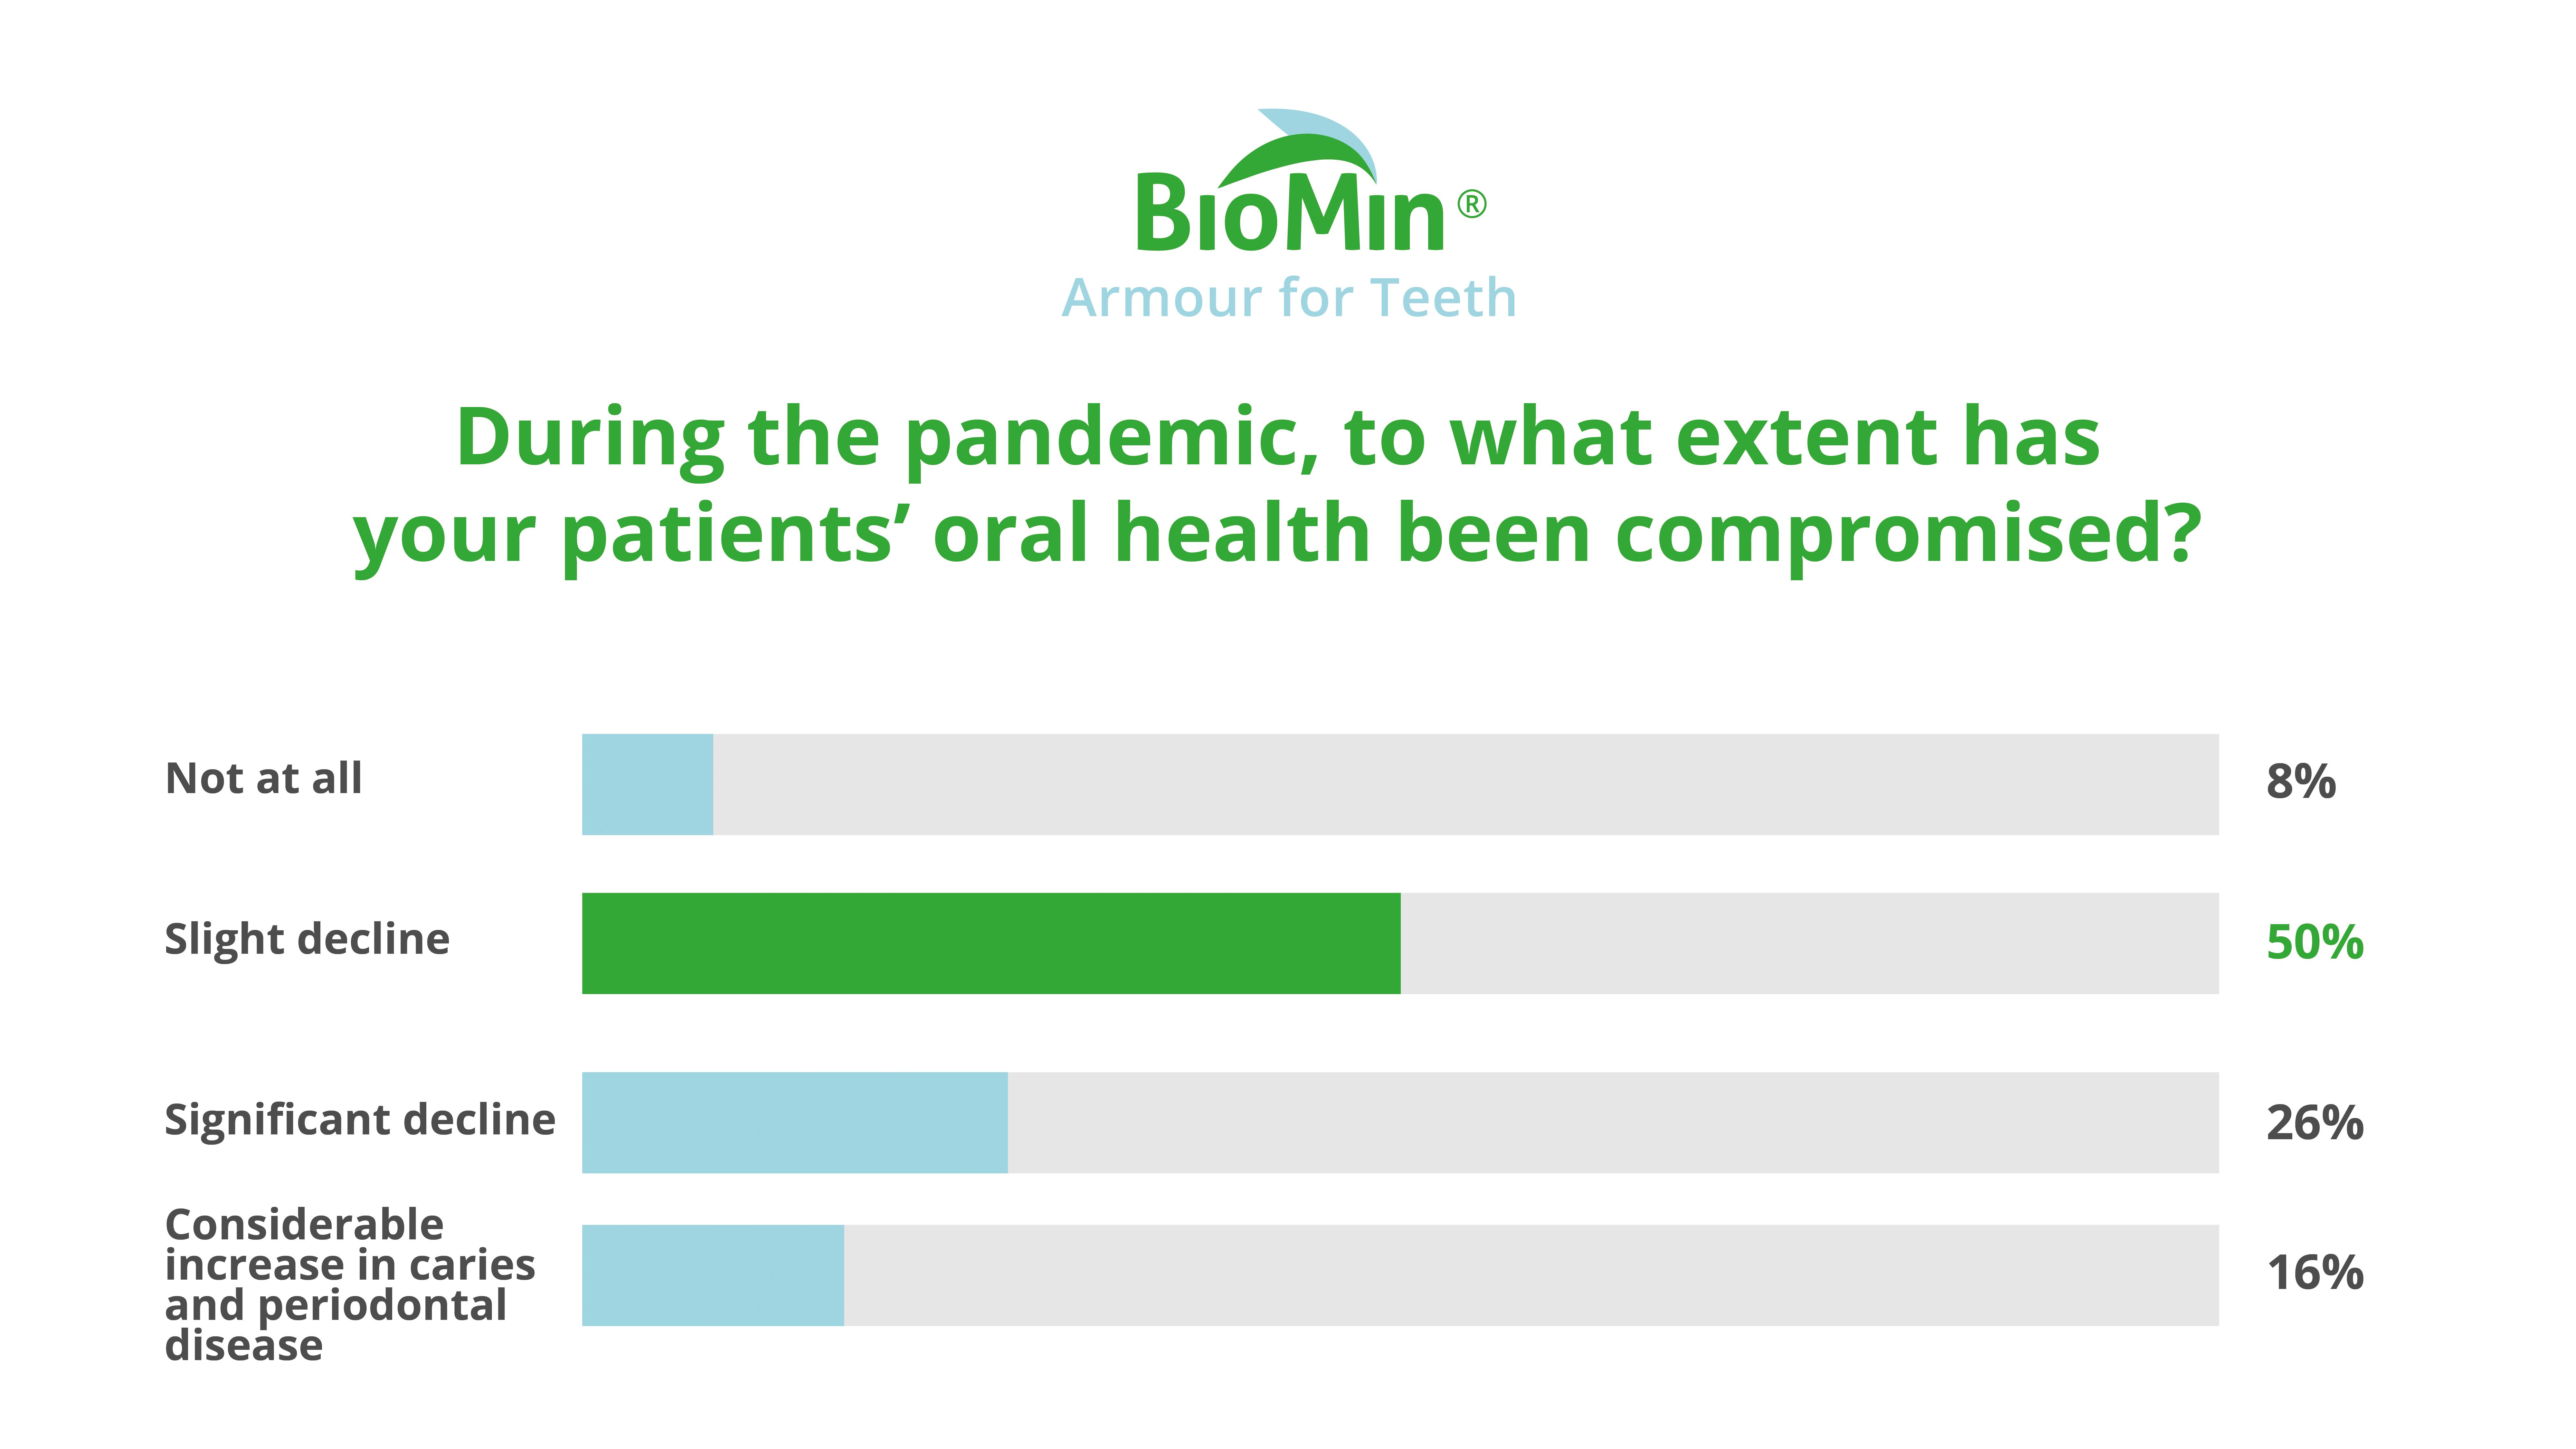 Dentine Hypersensitivity Poll - During the pandemic, to what extent has you patients oral health been compromised?